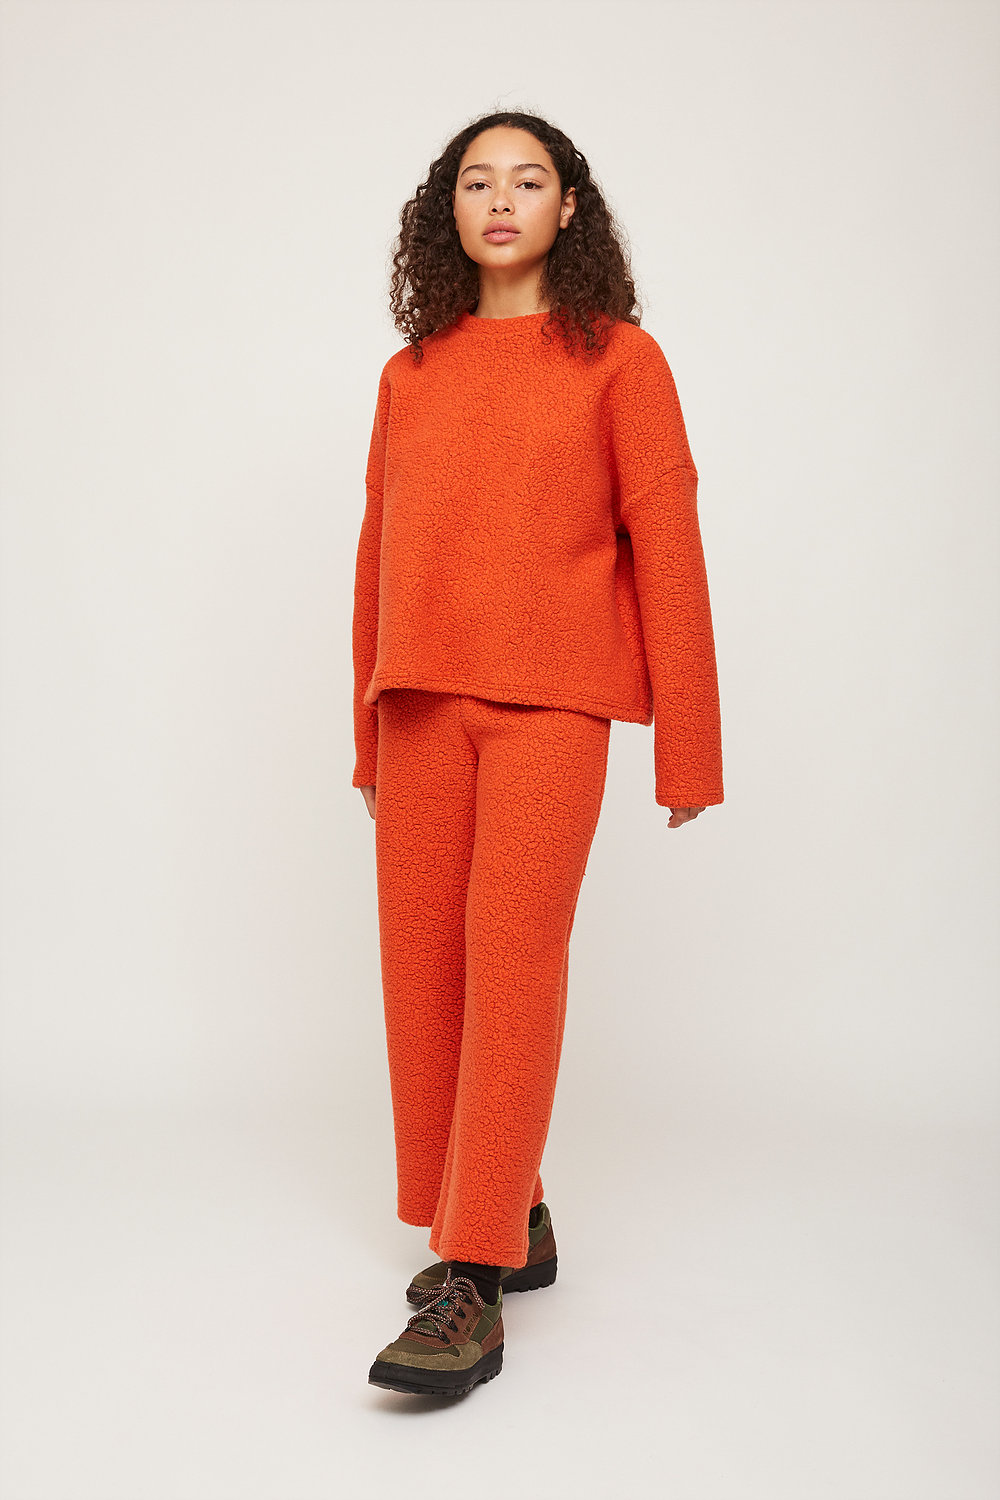 Rita Row Sweatshirt in Orange